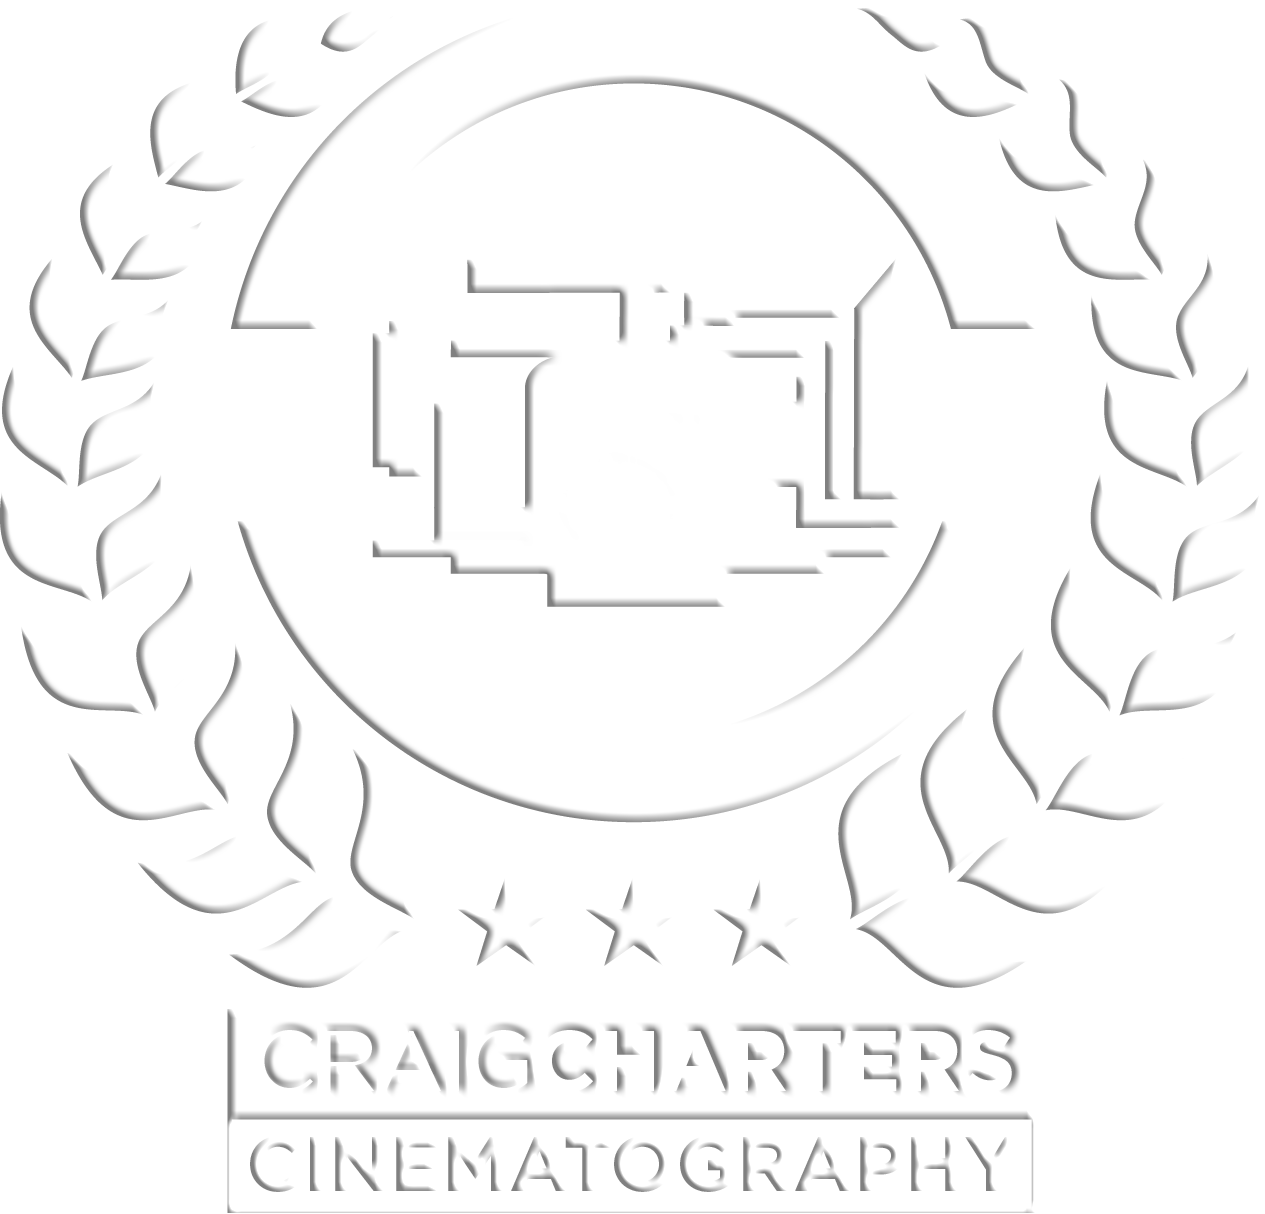 Craig Charters Cinematography